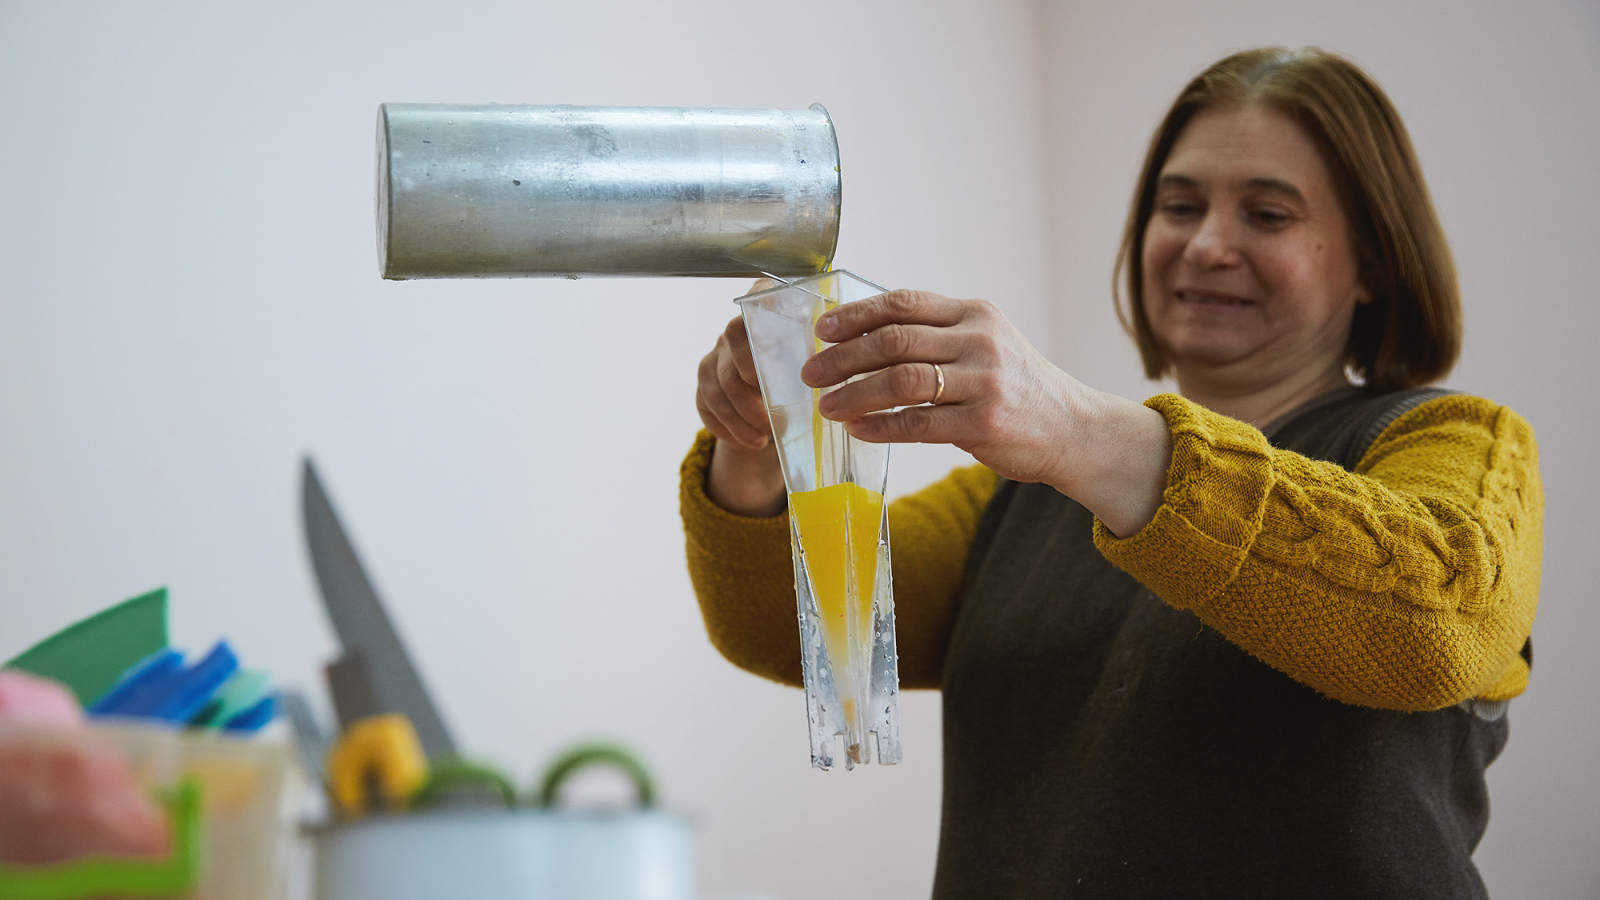 Angela Cârchilan demonstrates candle production process